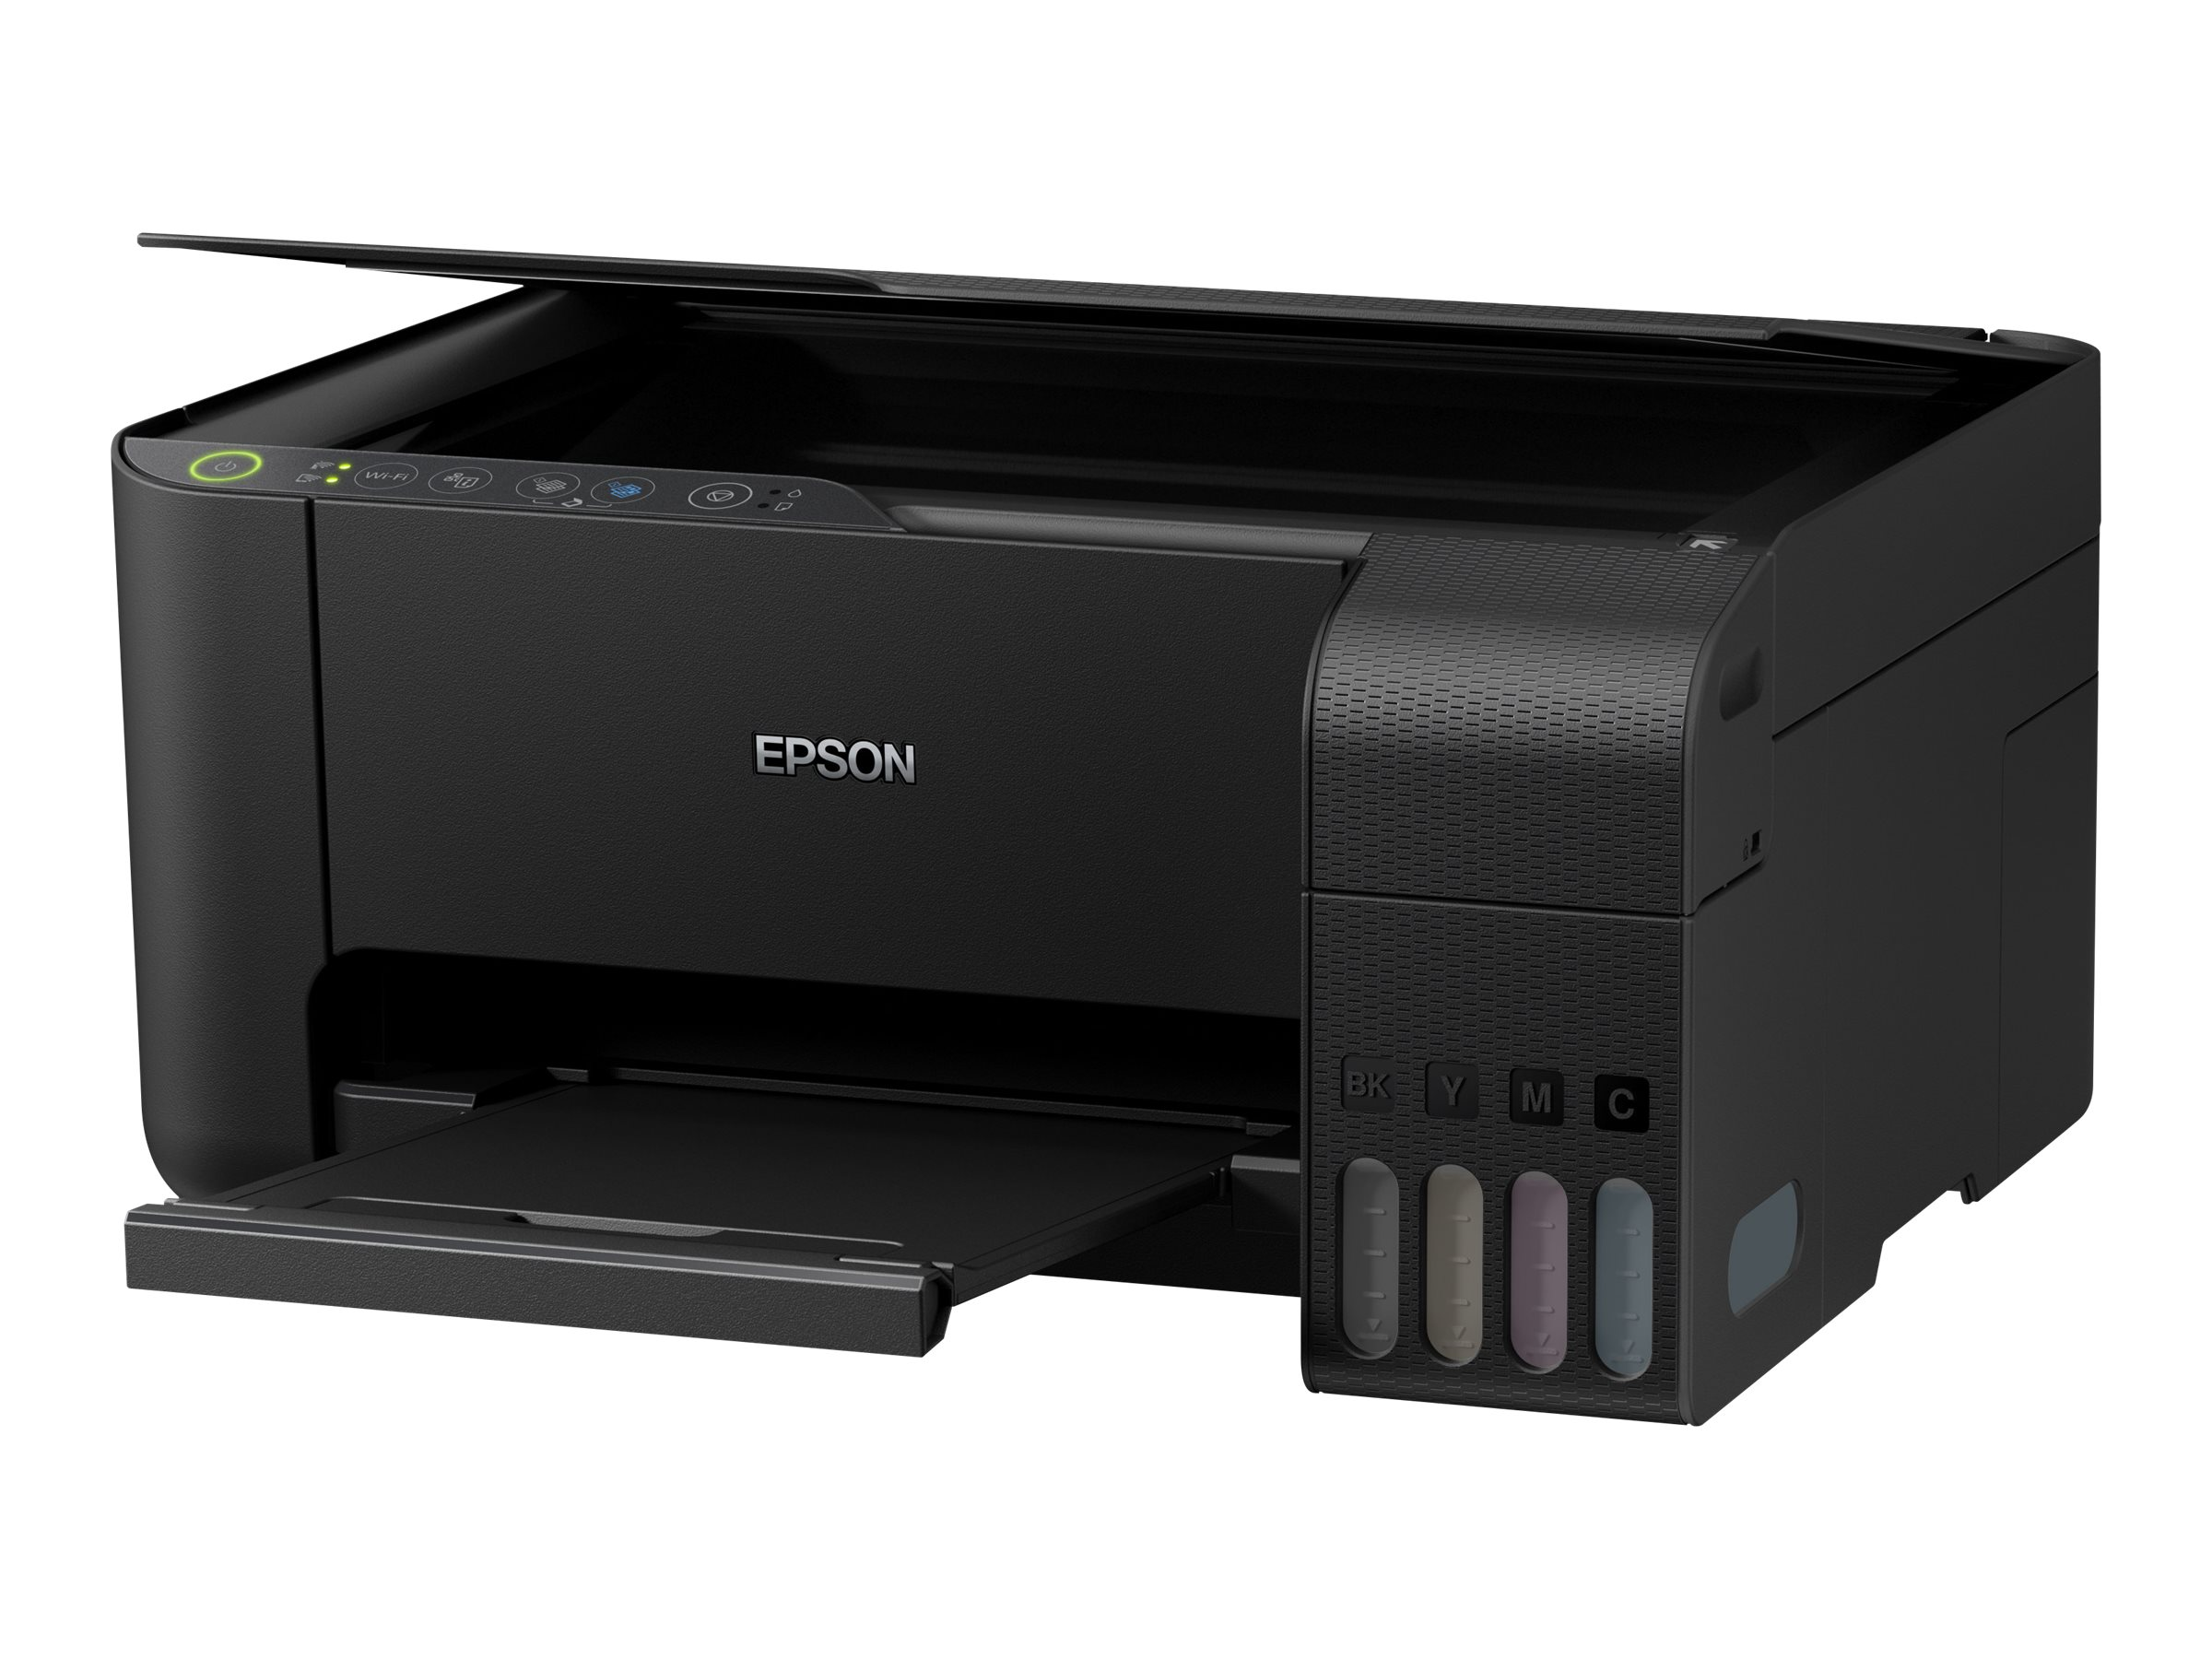 Epson EcoTank ET-2714 - Multifunktionsdrucker - Farbe - Tintenstrahl - Legal (216 x 356 mm)/A4 (210 x 297 mm) (Original) - A4/Le